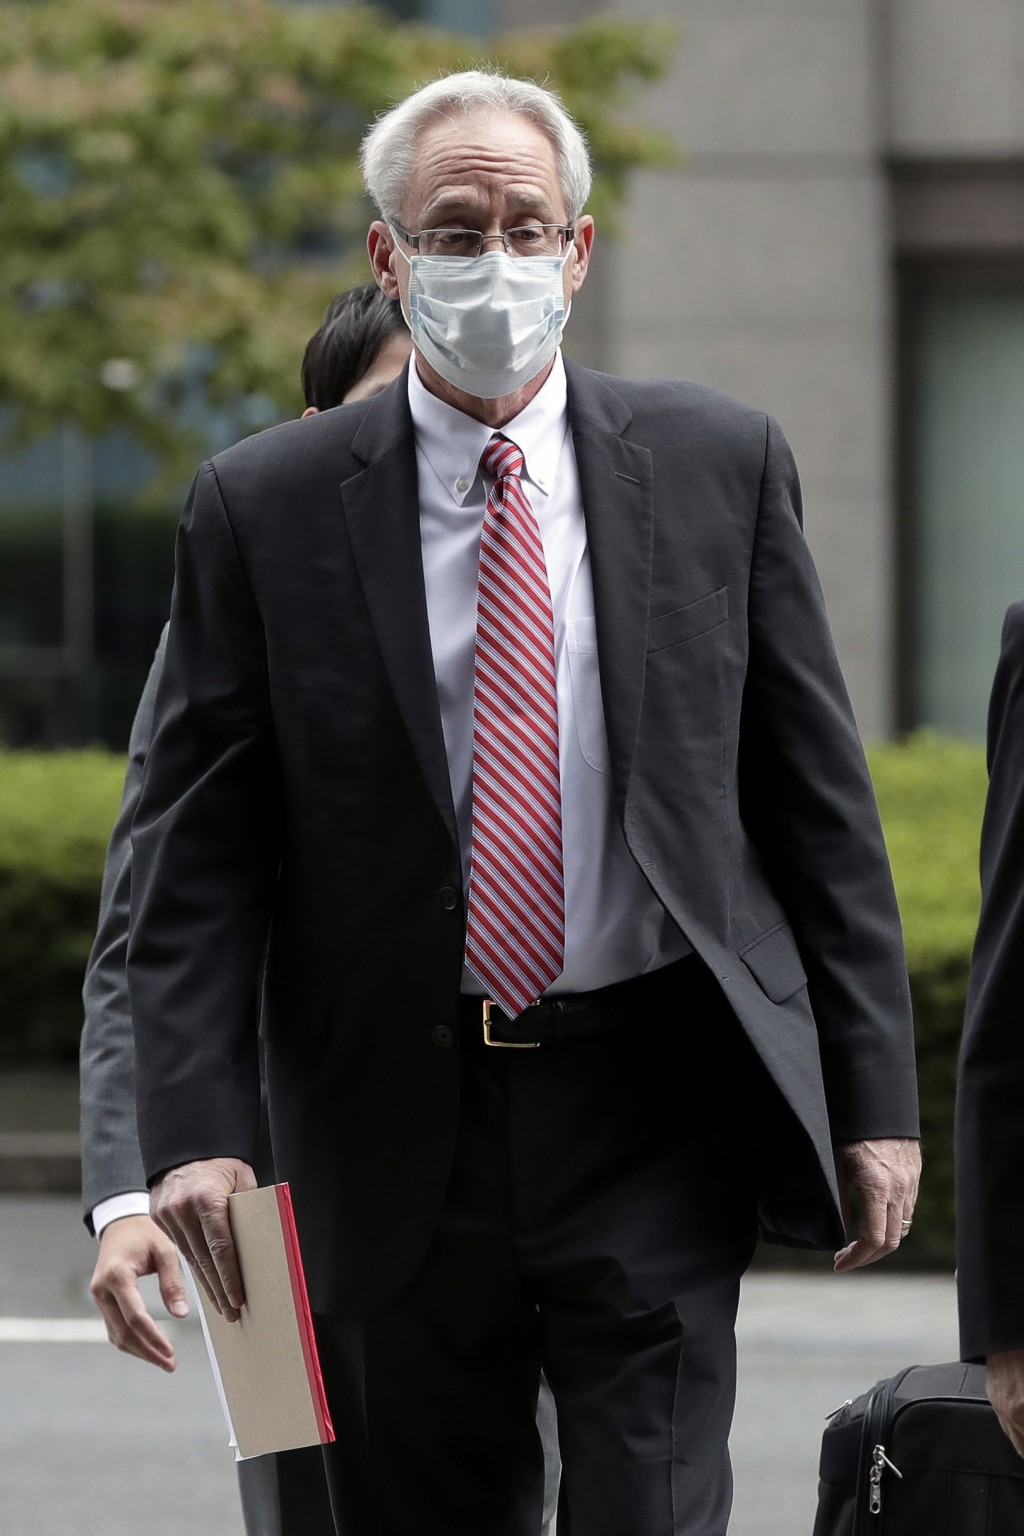 Former Nissan Motor Co. executive Greg Kelly arrives for the first trial hearing at the Tokyo District Court in Tokyo Tuesday, Sept. 15, 2020. The fin...